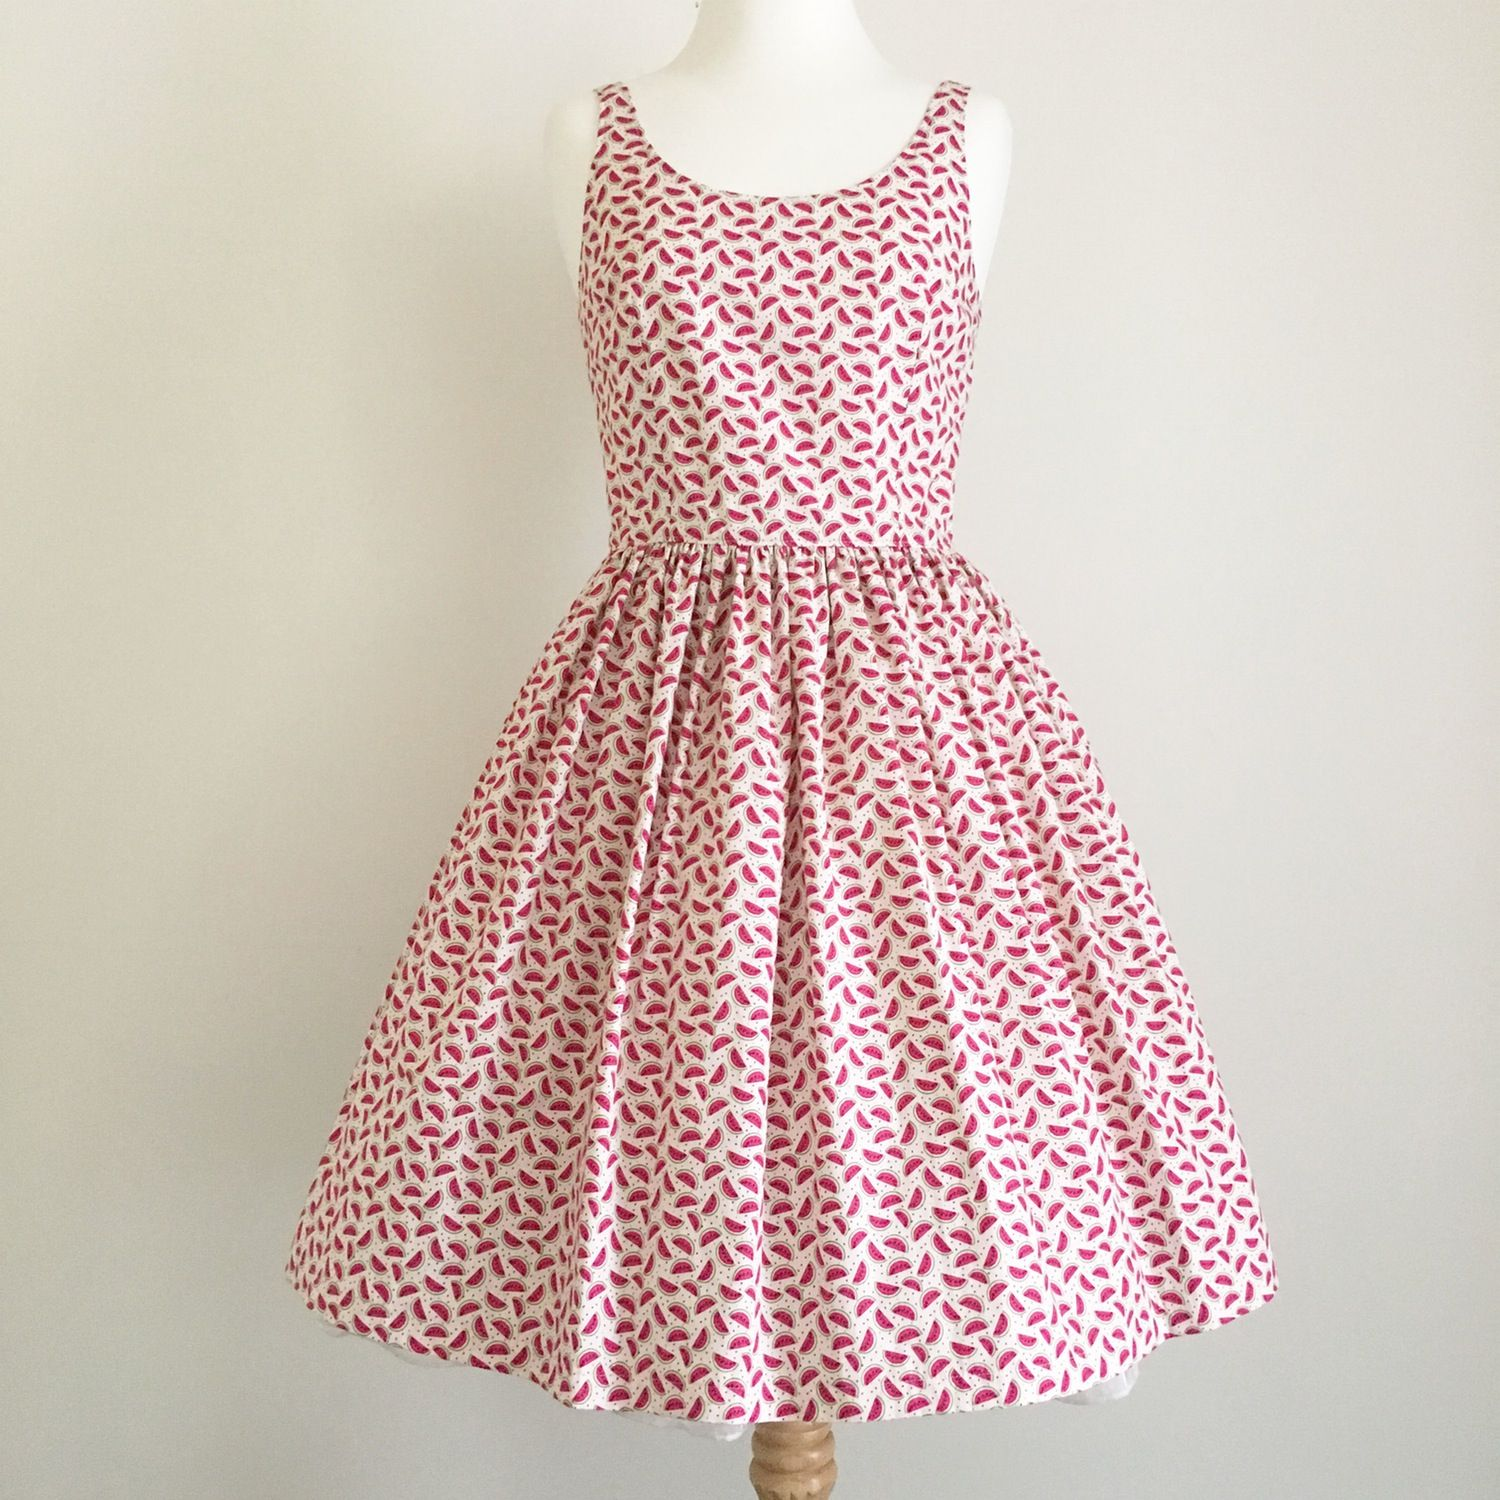 Image of watermelon wednesday dress pretty clothes i wish i could